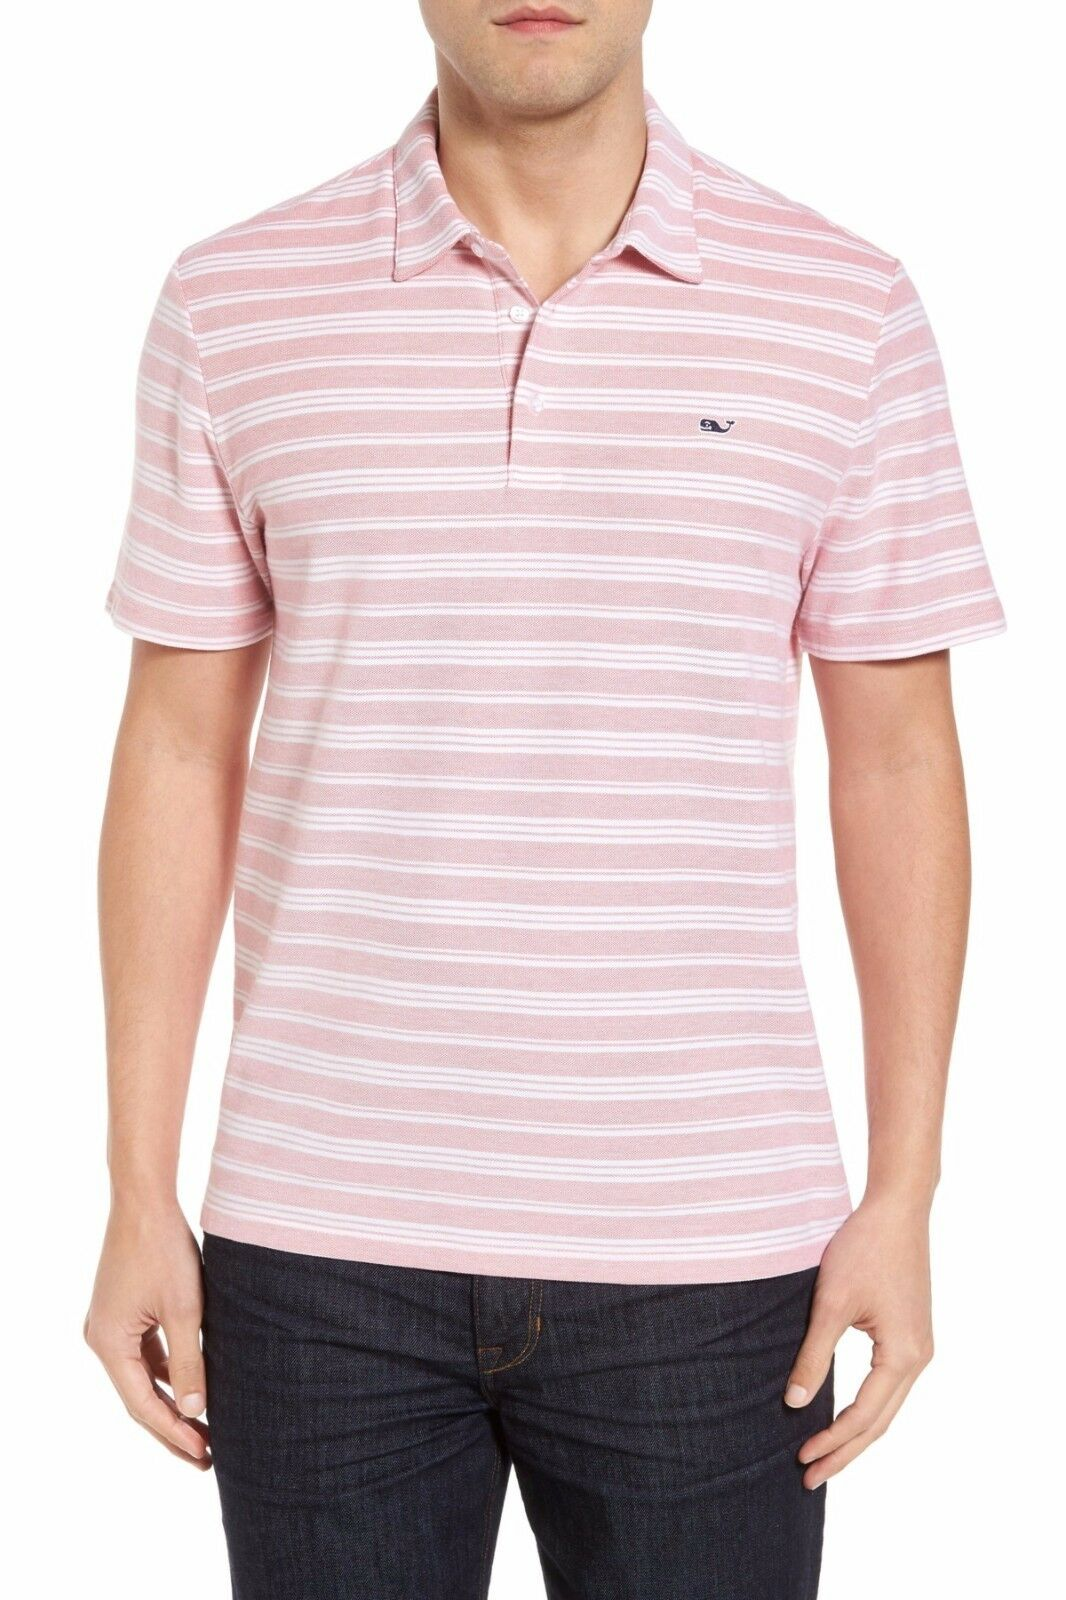 VINEYARD VINES Polo Stripe 100% Peruvian Cotton Jetty ROT - Sz L, XL